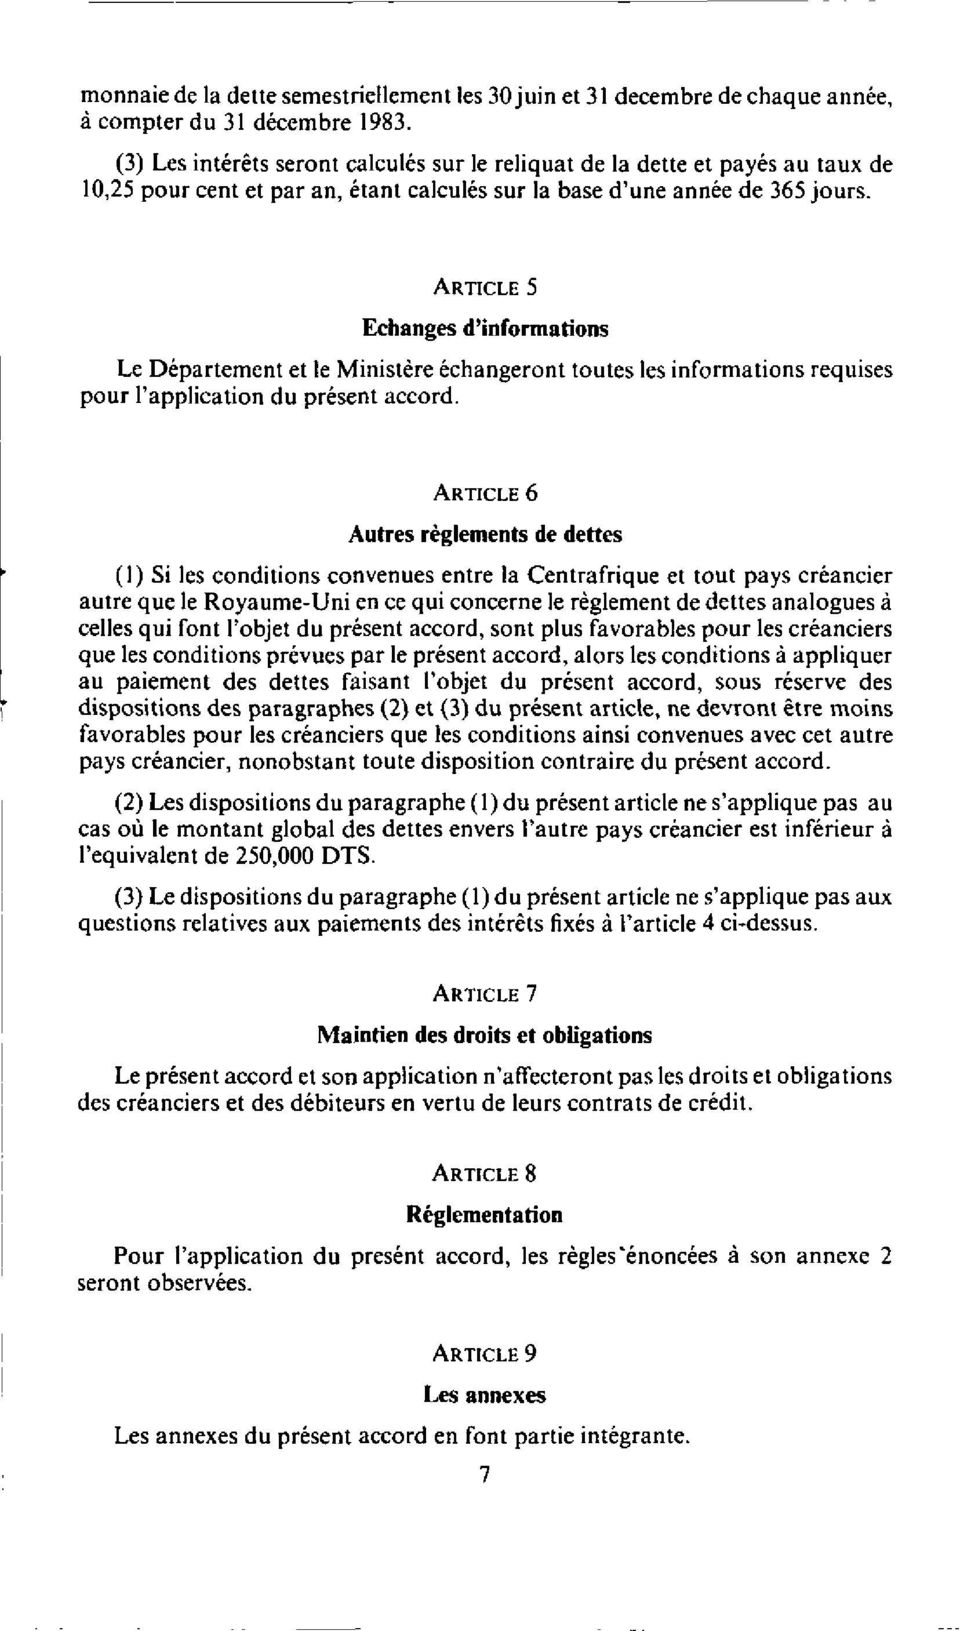 ARTICLE 5 Echanges d'informations Le Departement et le Ministere echangeront toutes les informations requises pour ('application du present accord.